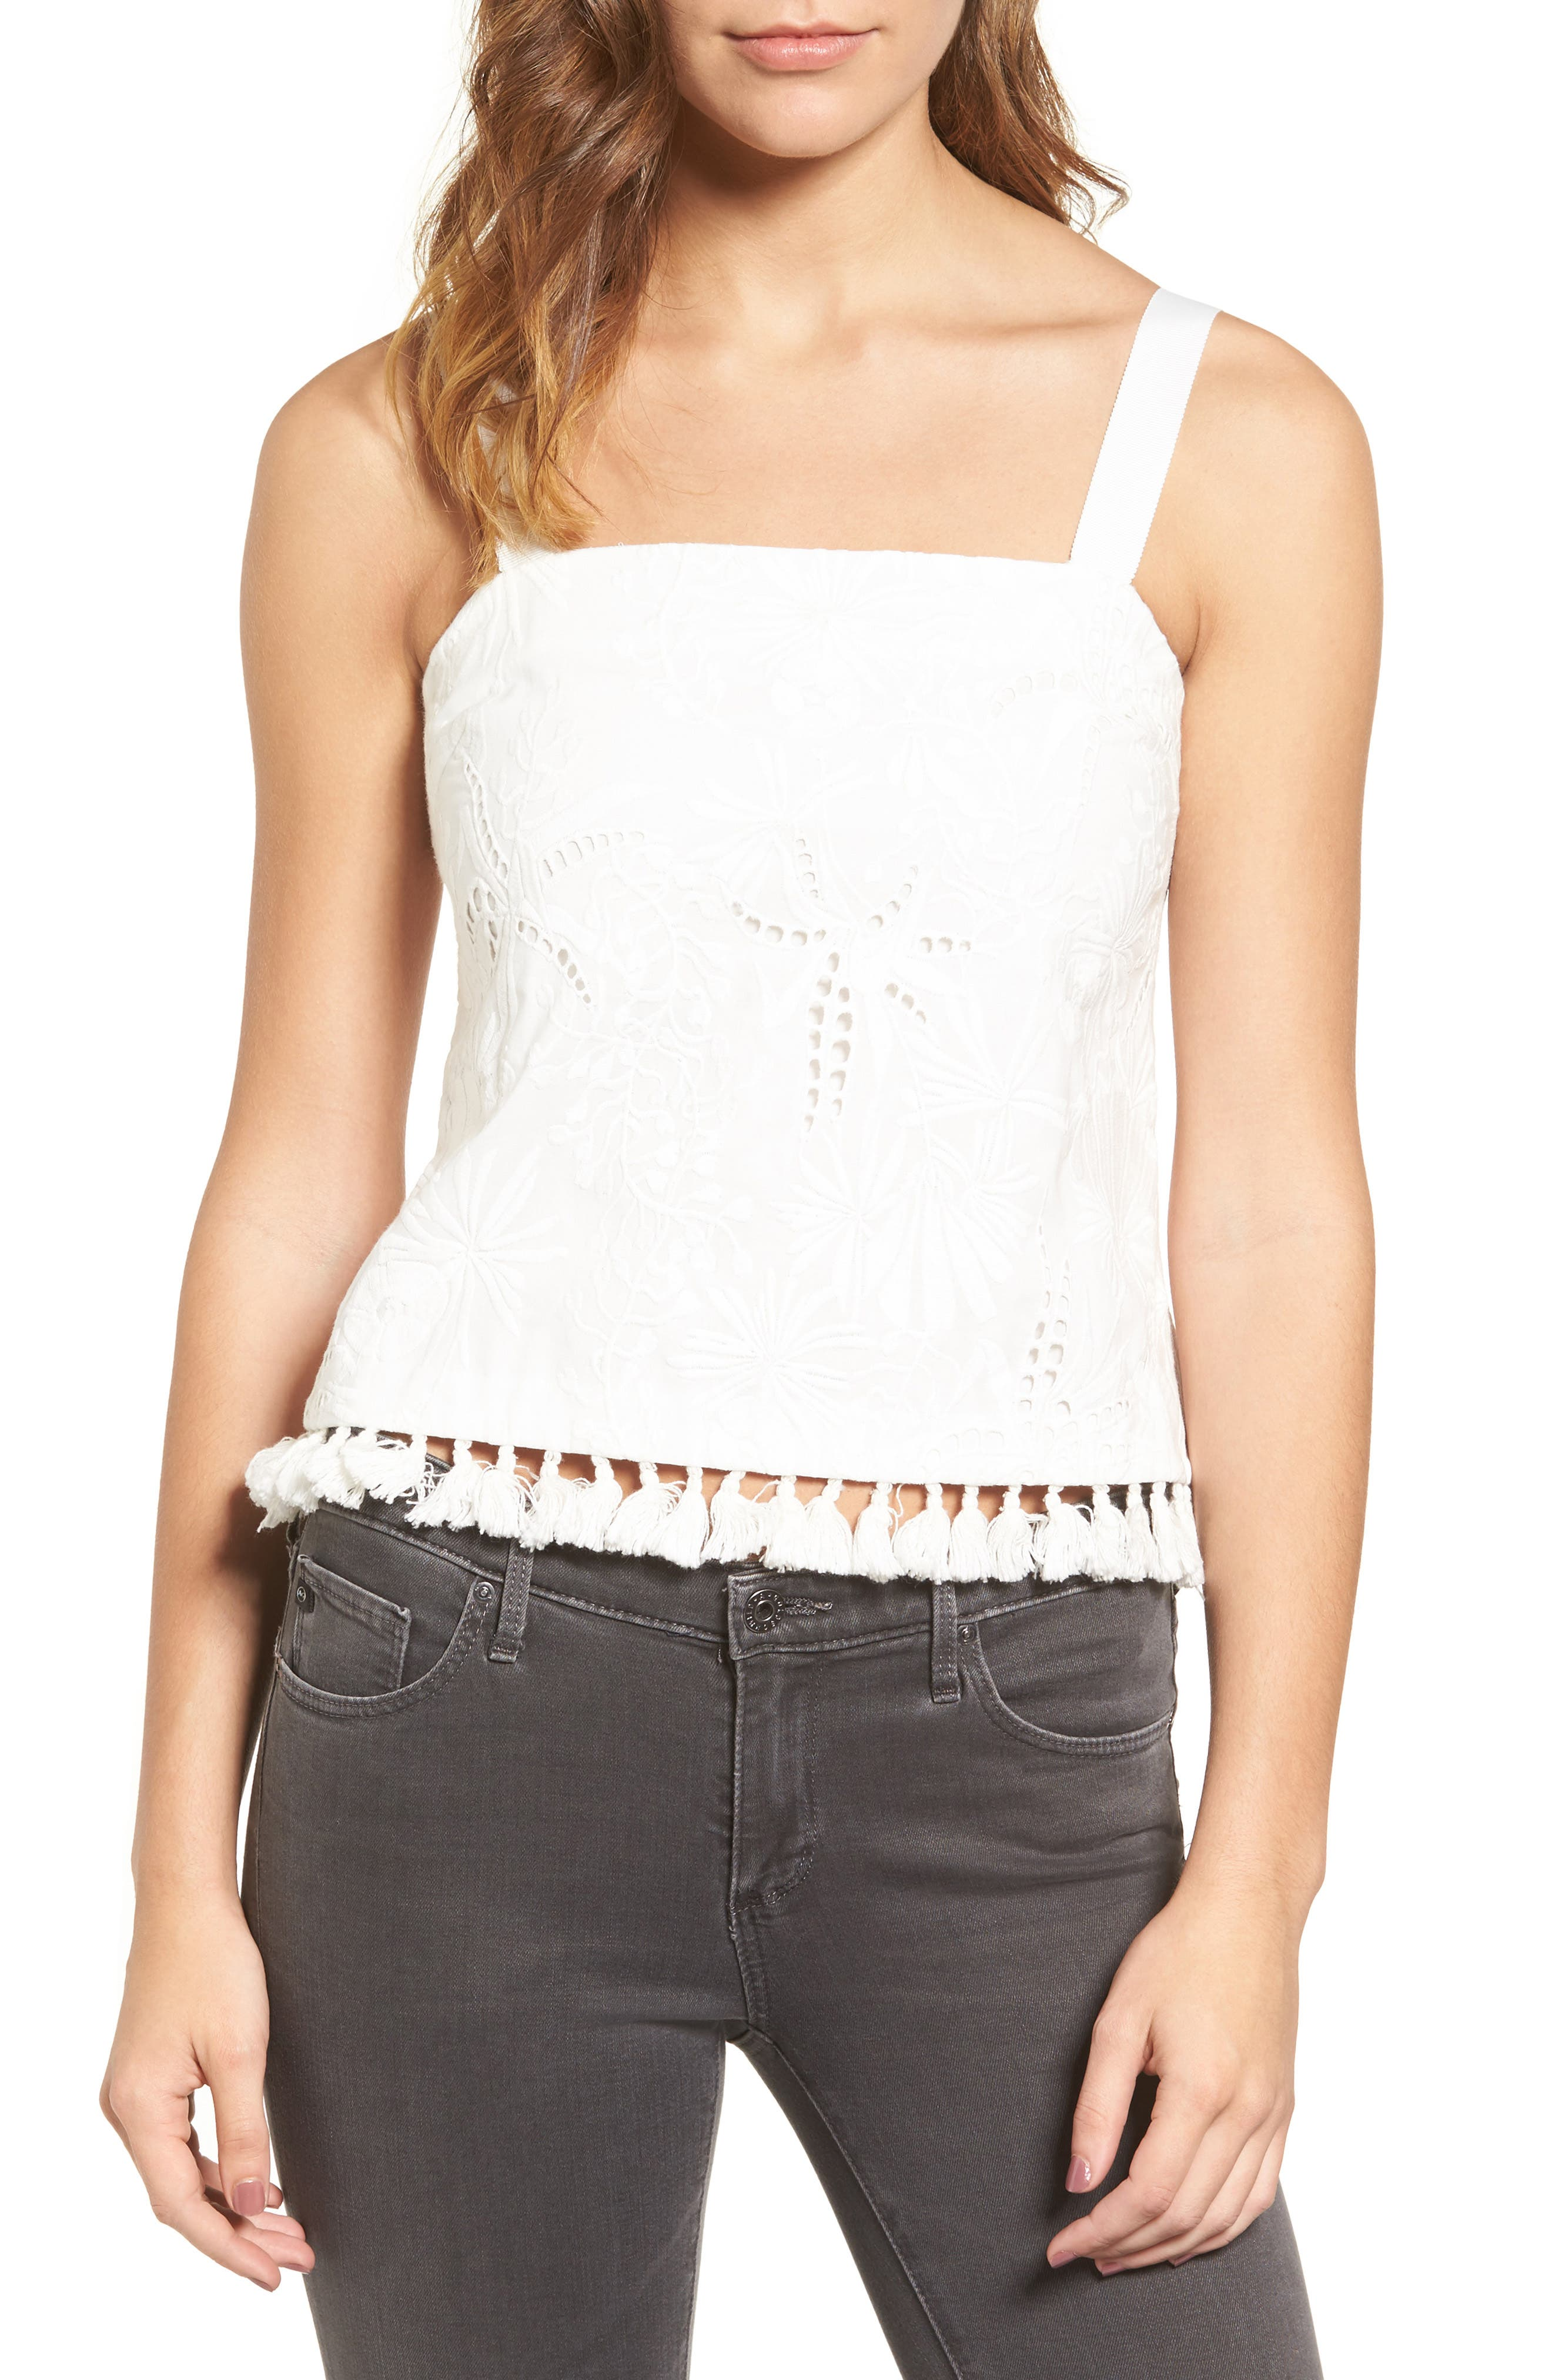 cooper & ella Camila Embroidered Cotton Tank